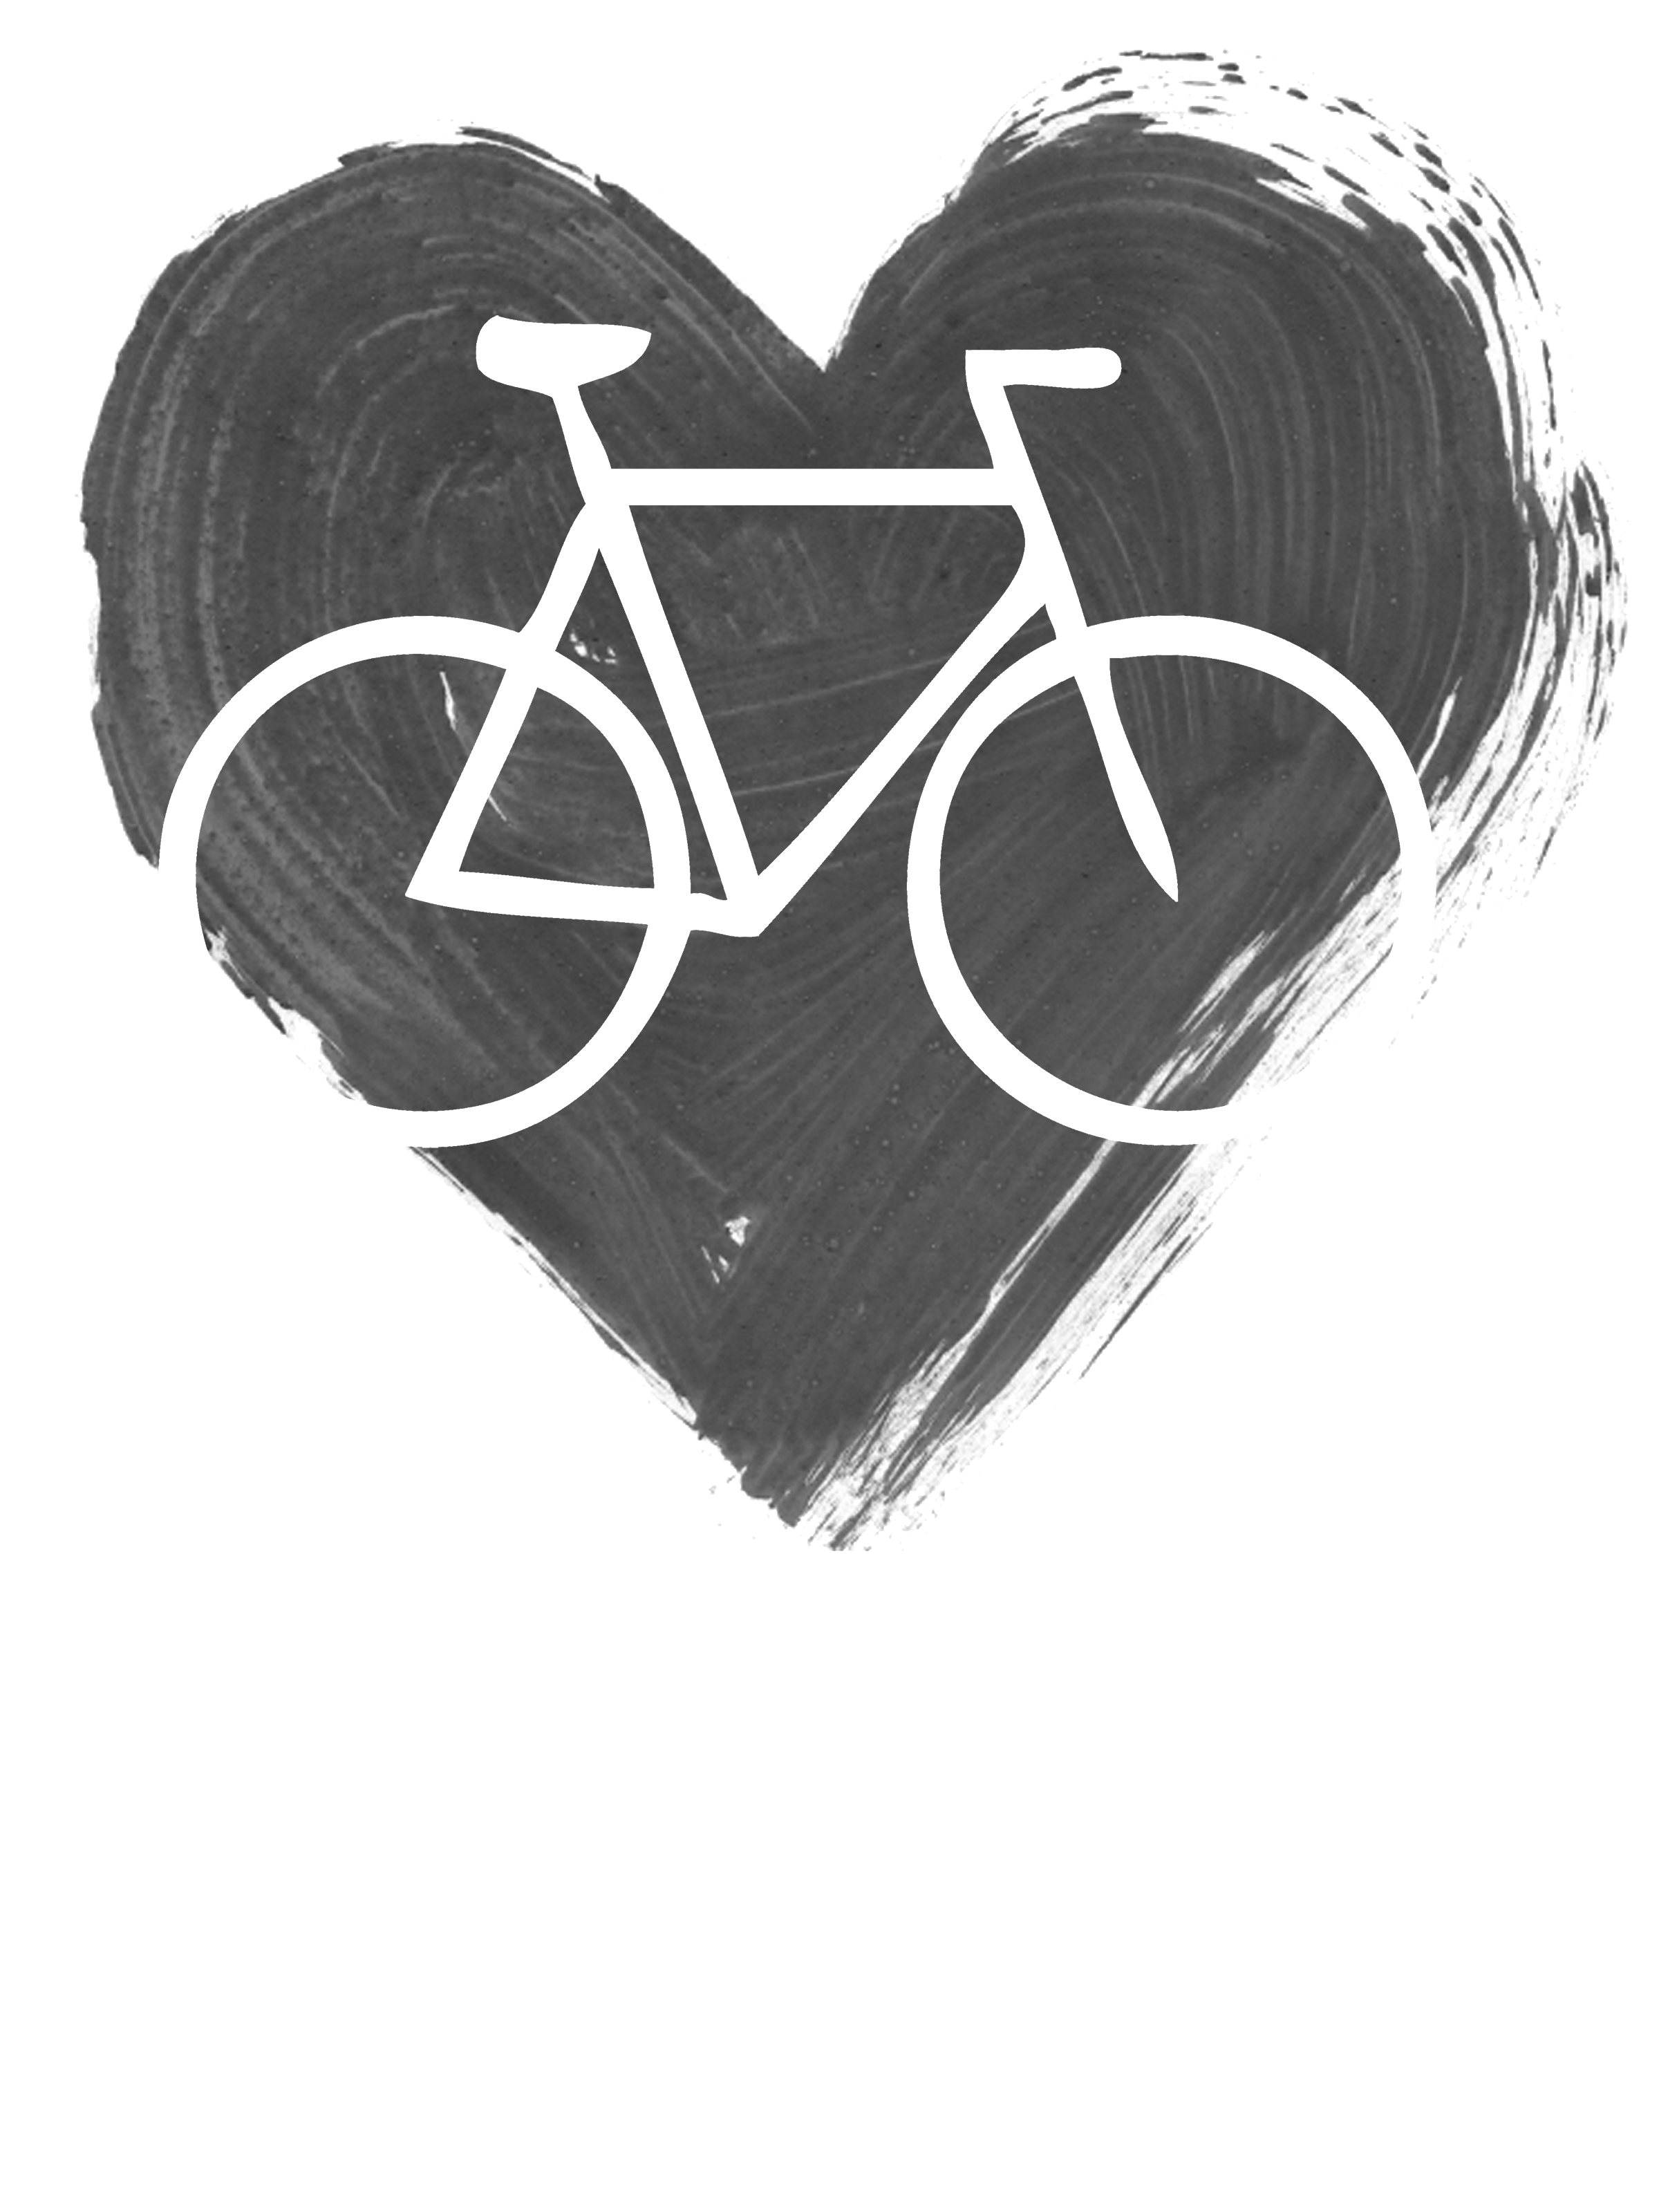 0207 – Bicycle inside your Heart